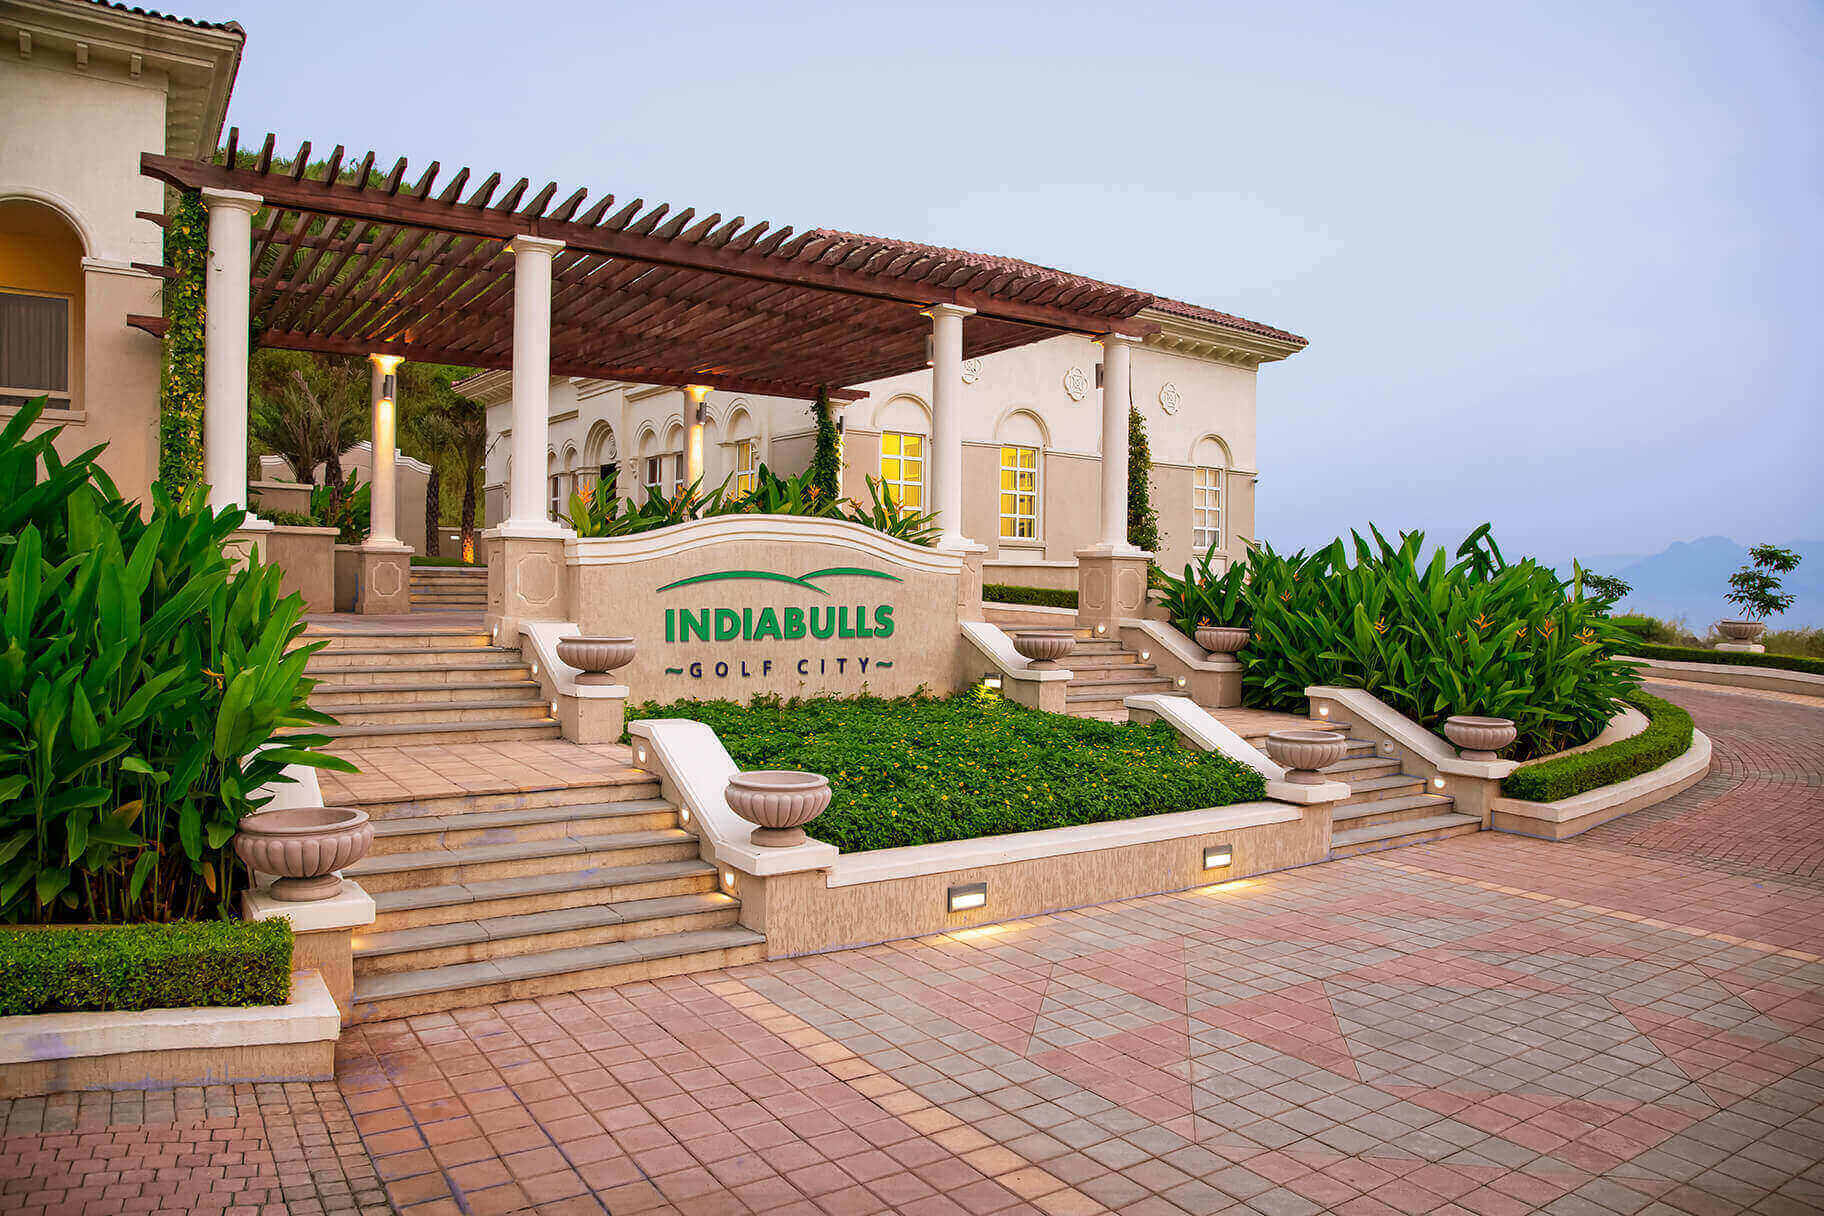 Affordable Luxury Homes at Indiabulls Golf City, Savroli for